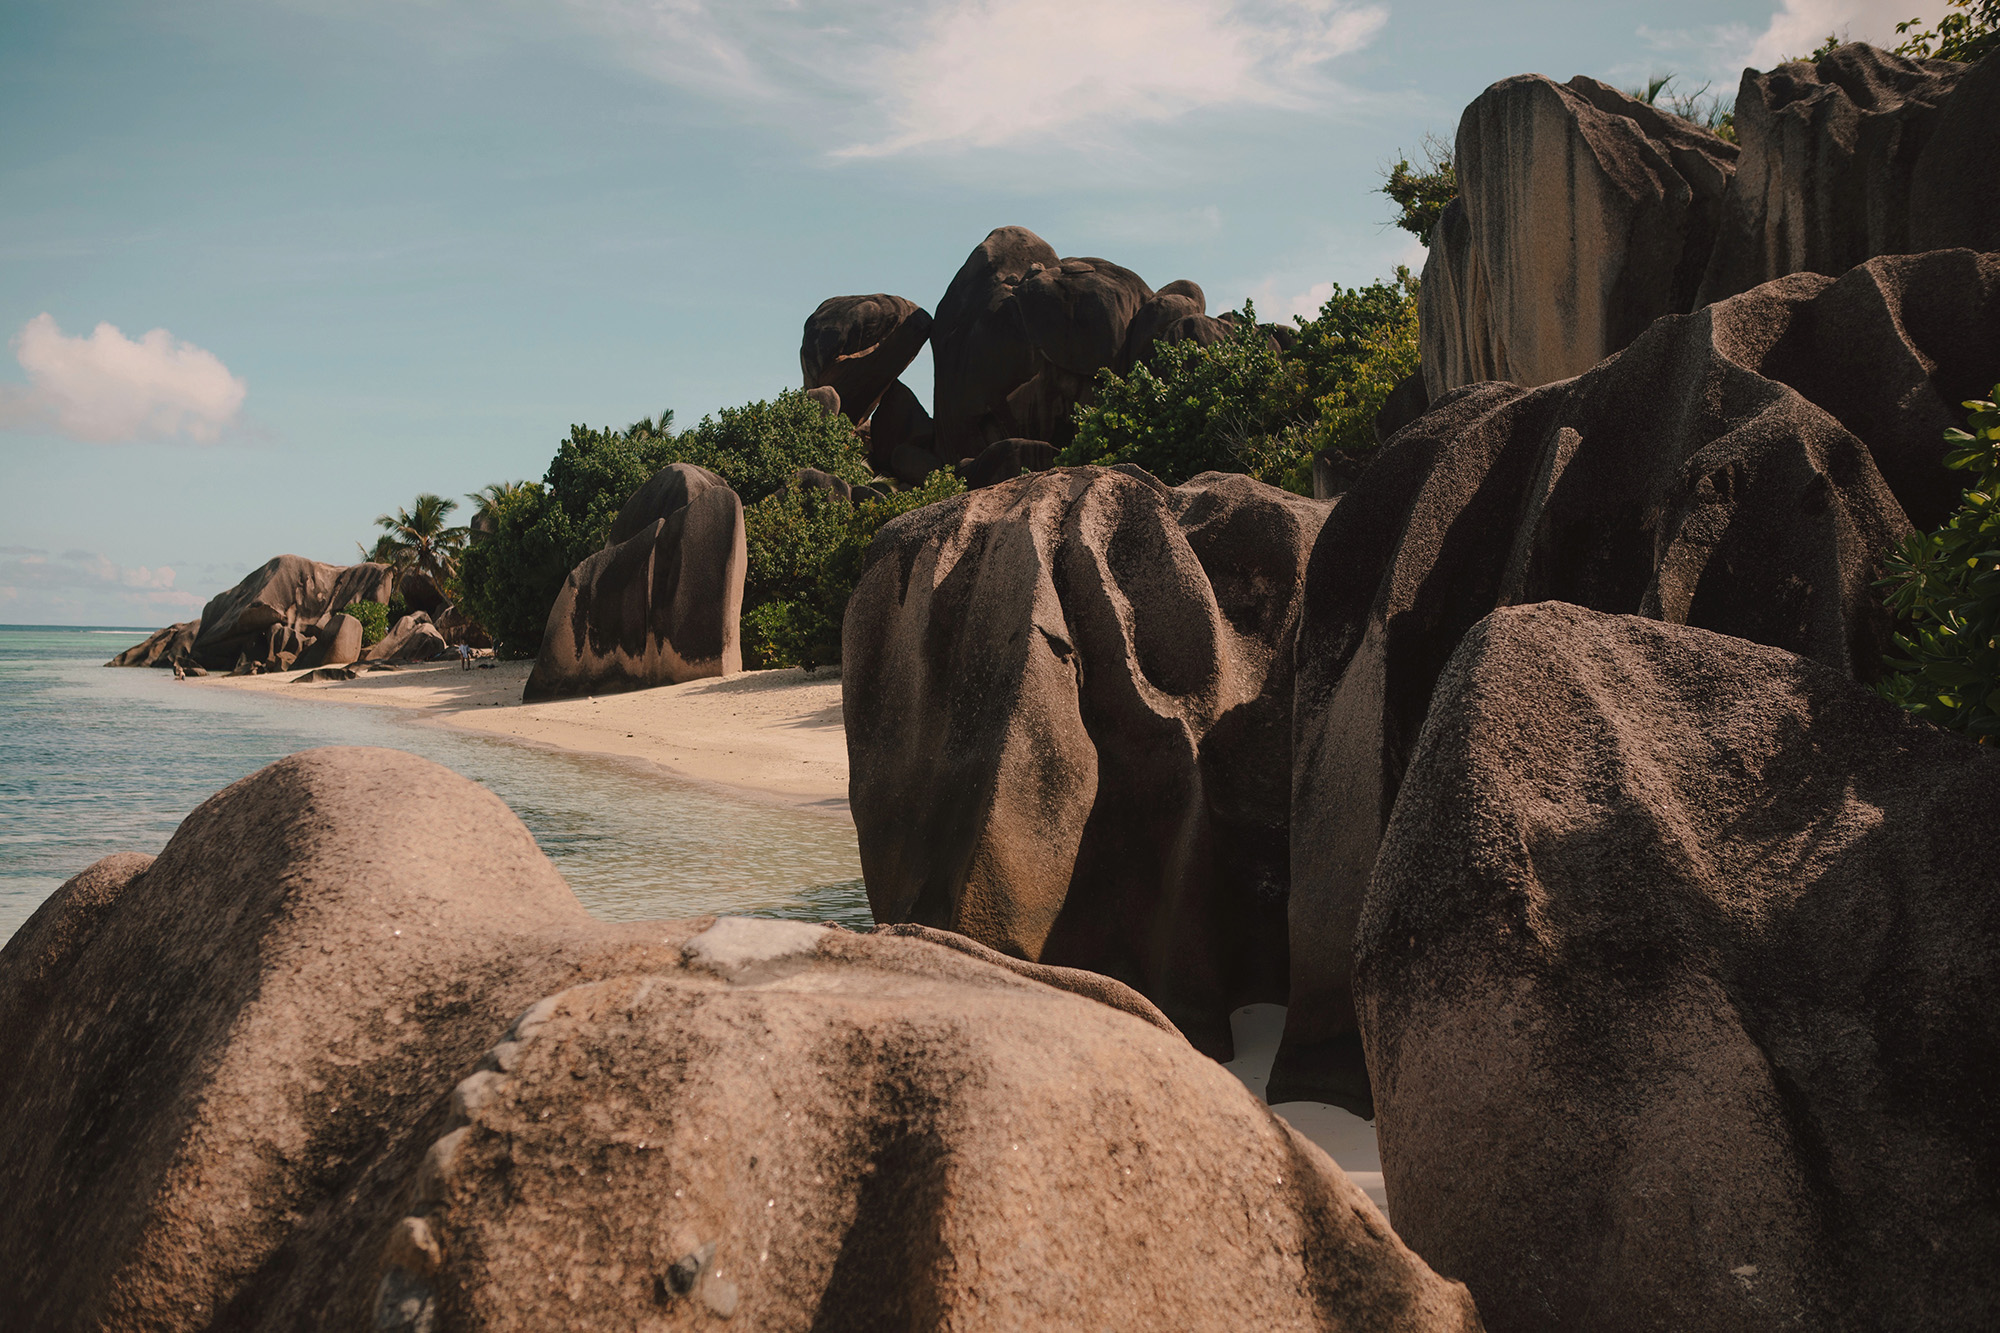 The Seychelles possess an unmistakeable allure … - But there is so much more to this place than meets the eye.